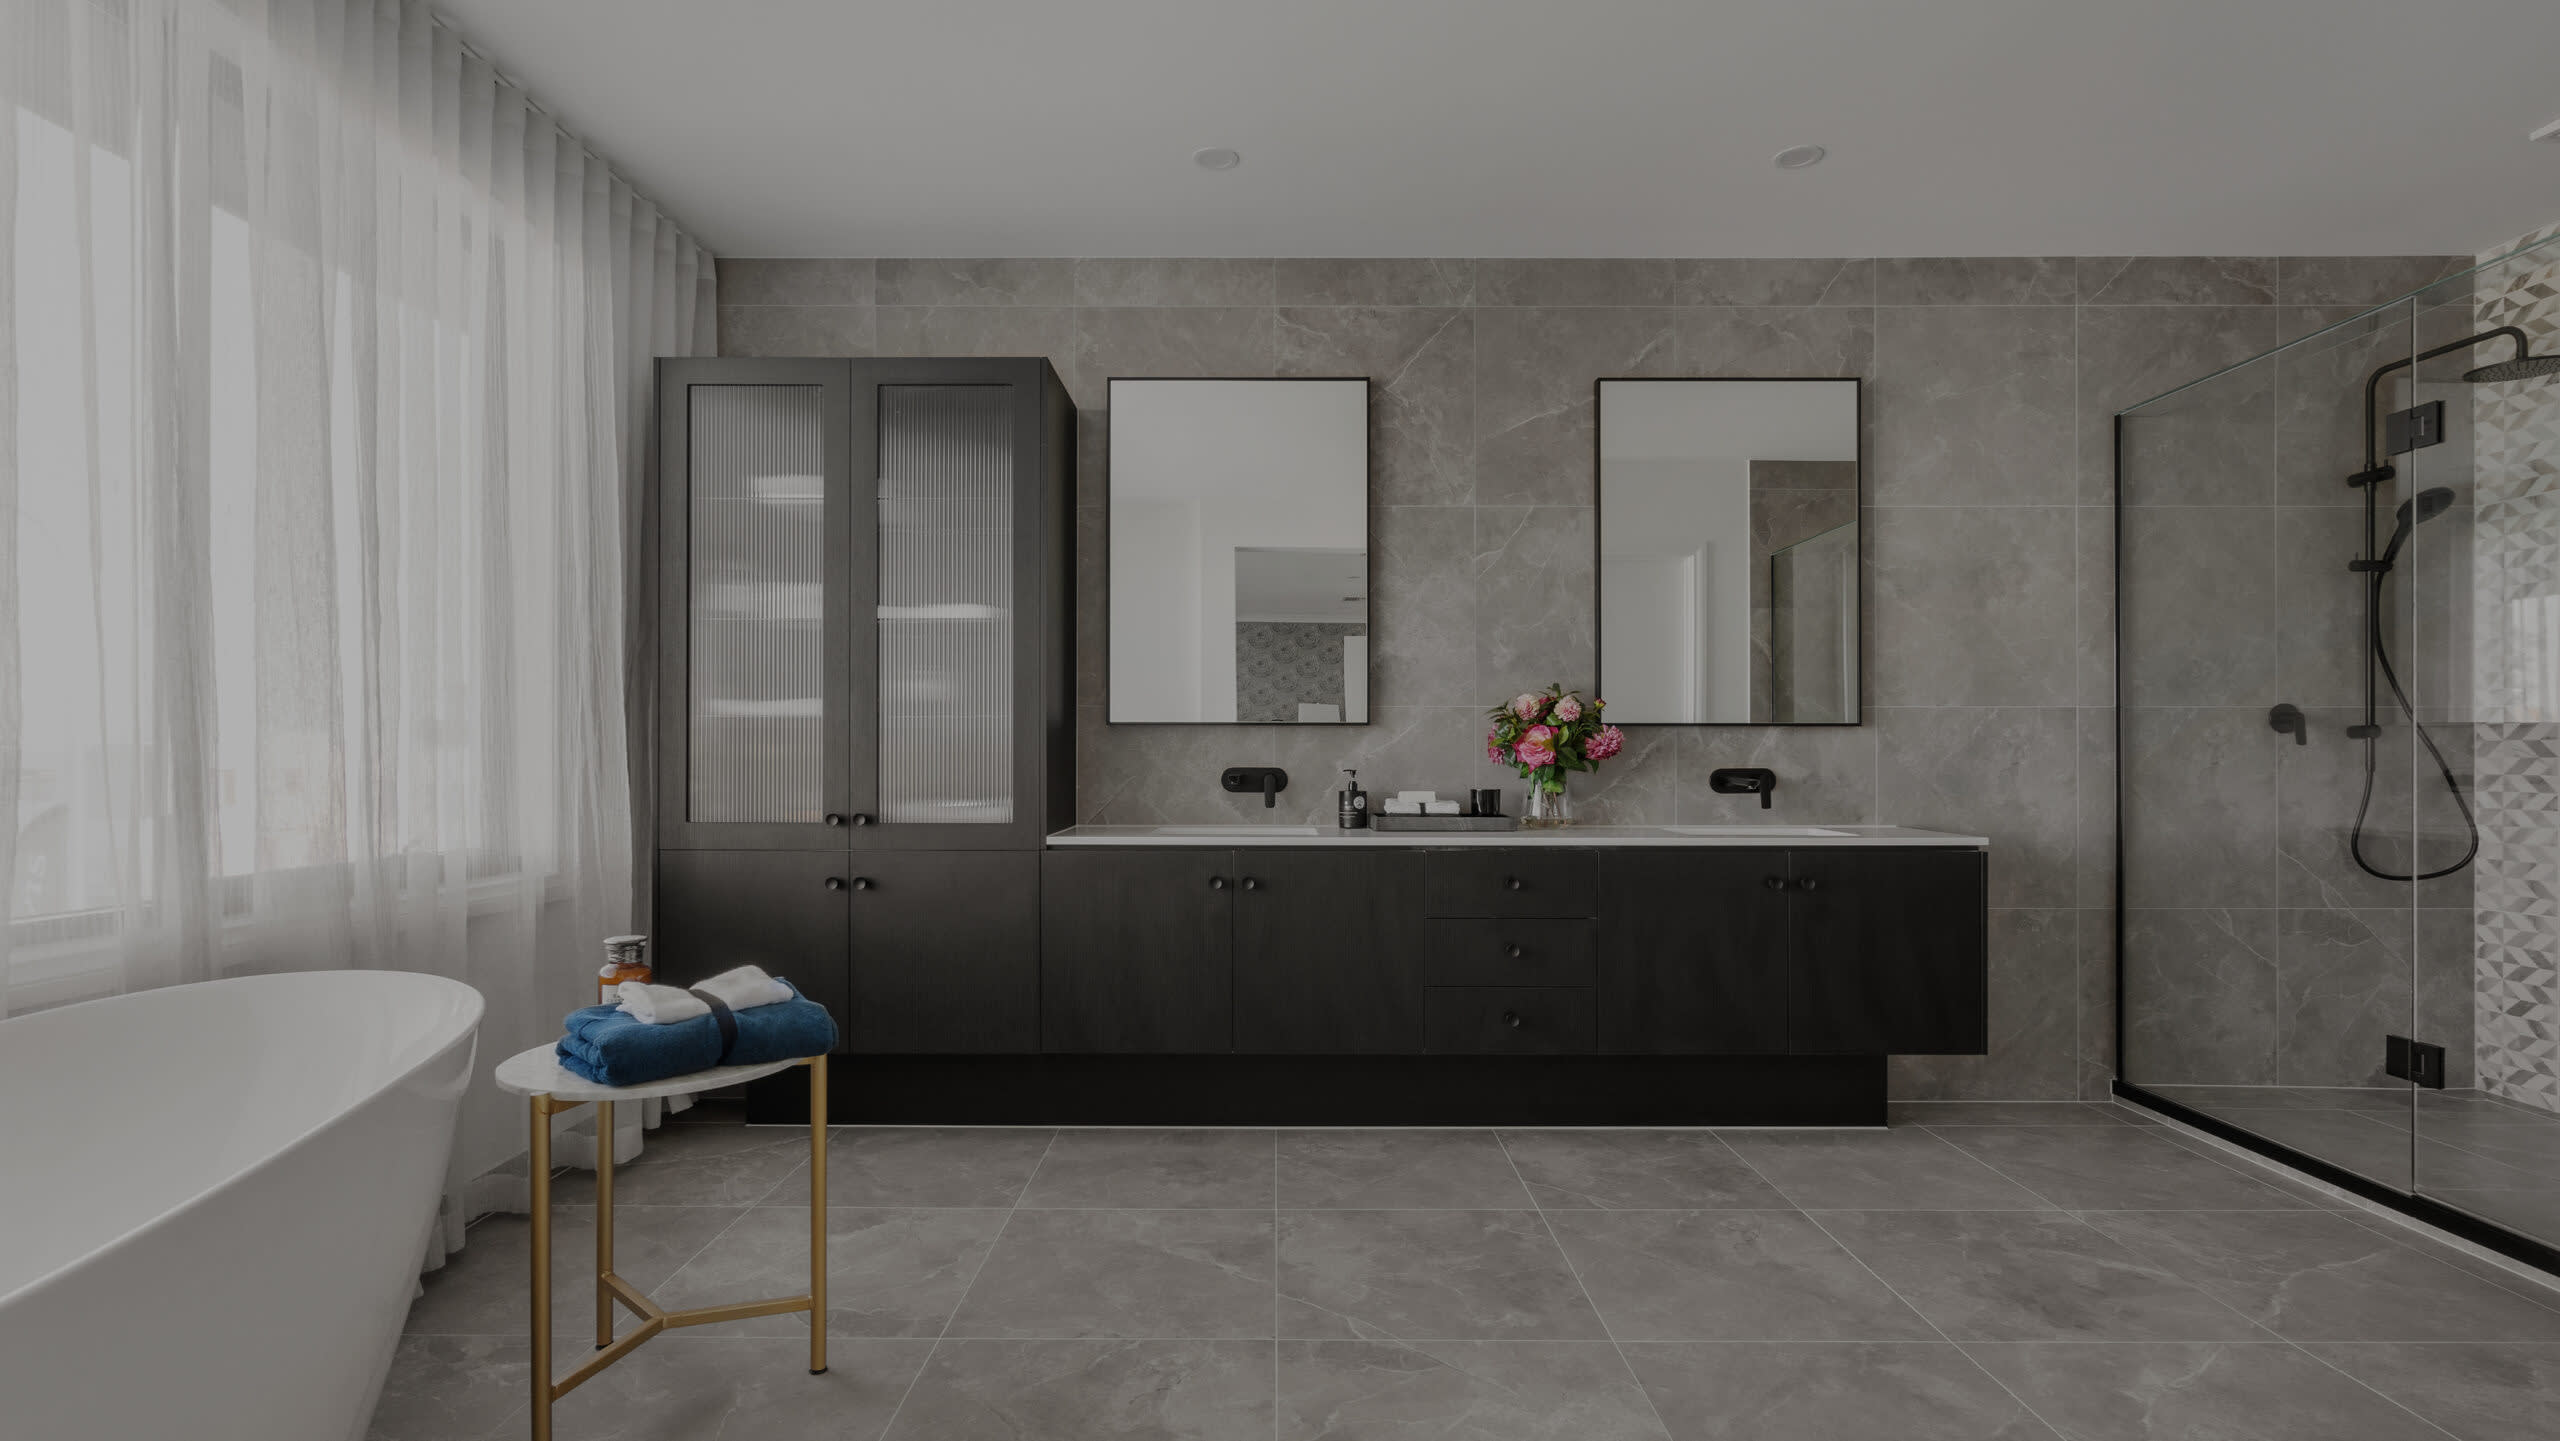 How to choose the right tiling and finishes